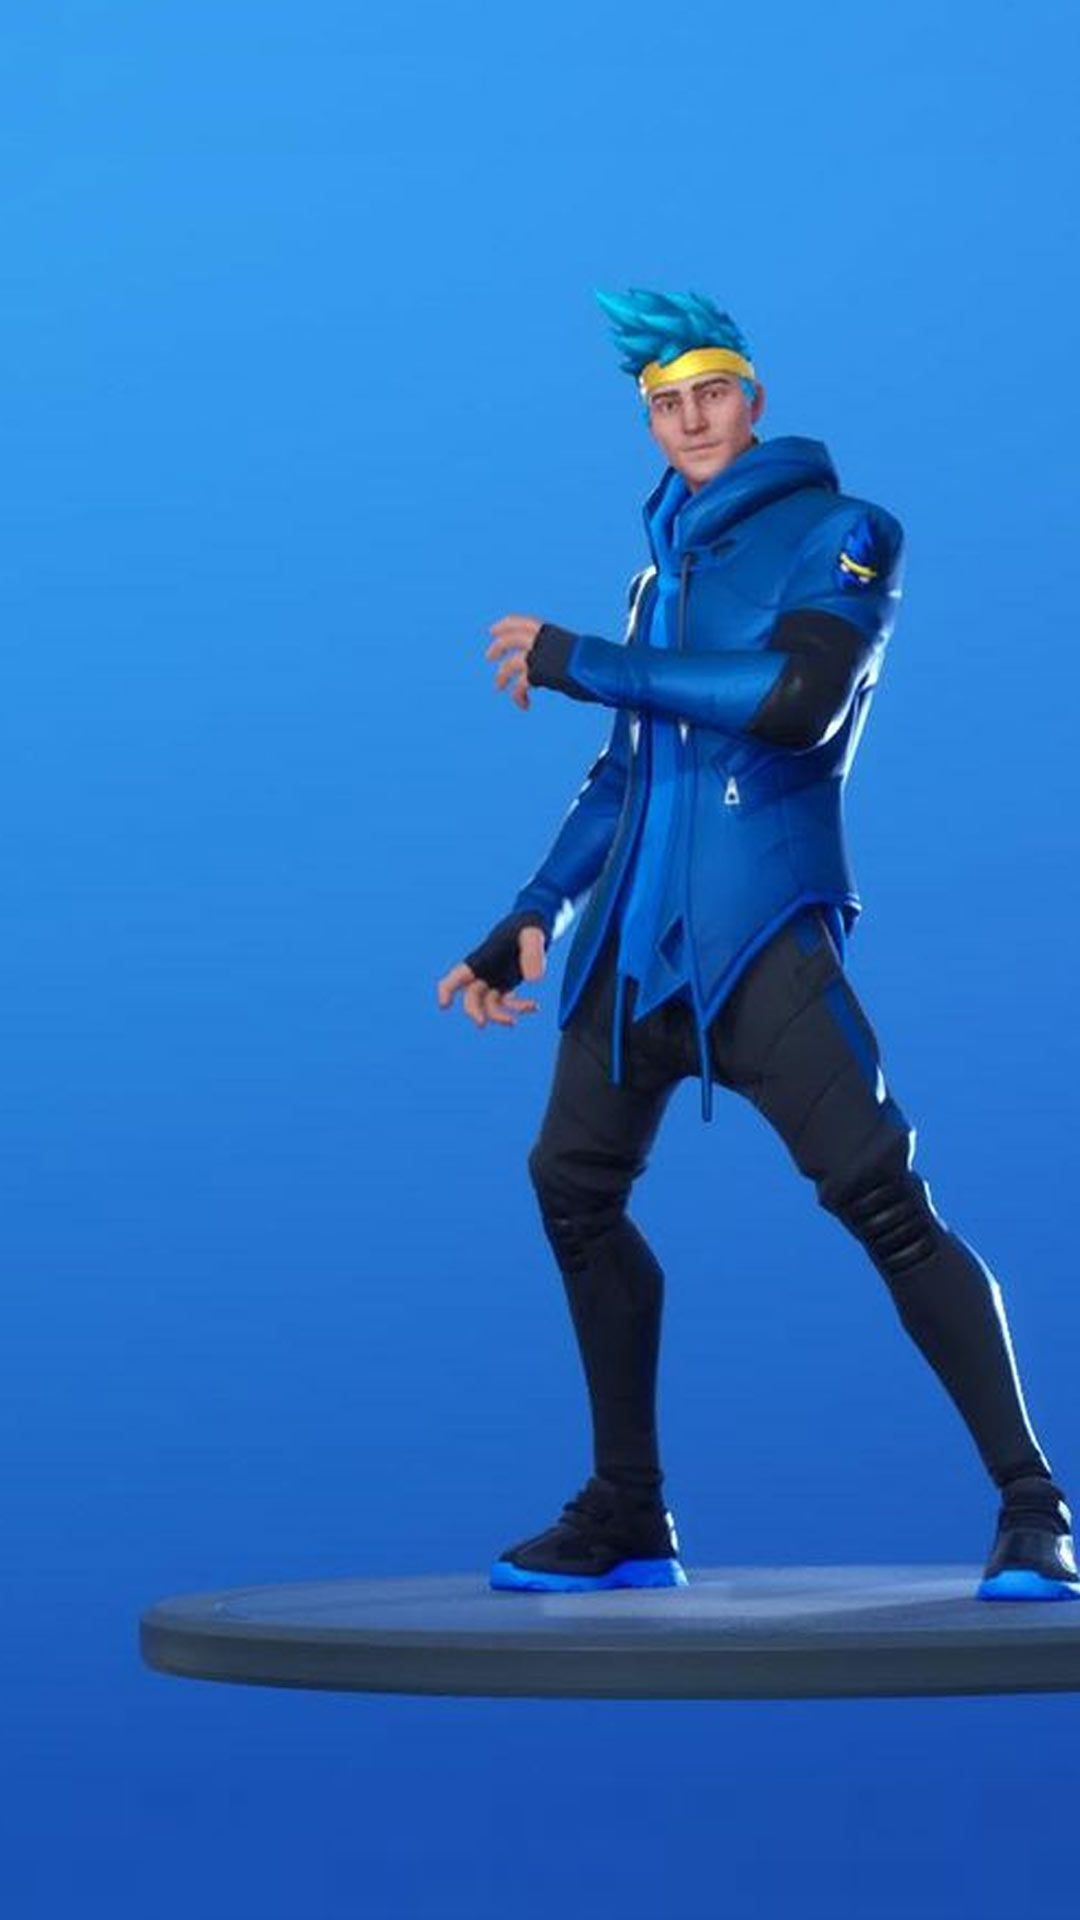 5 Fortnite Ninja Skin Phone Wallpaper Backgrounds For Free